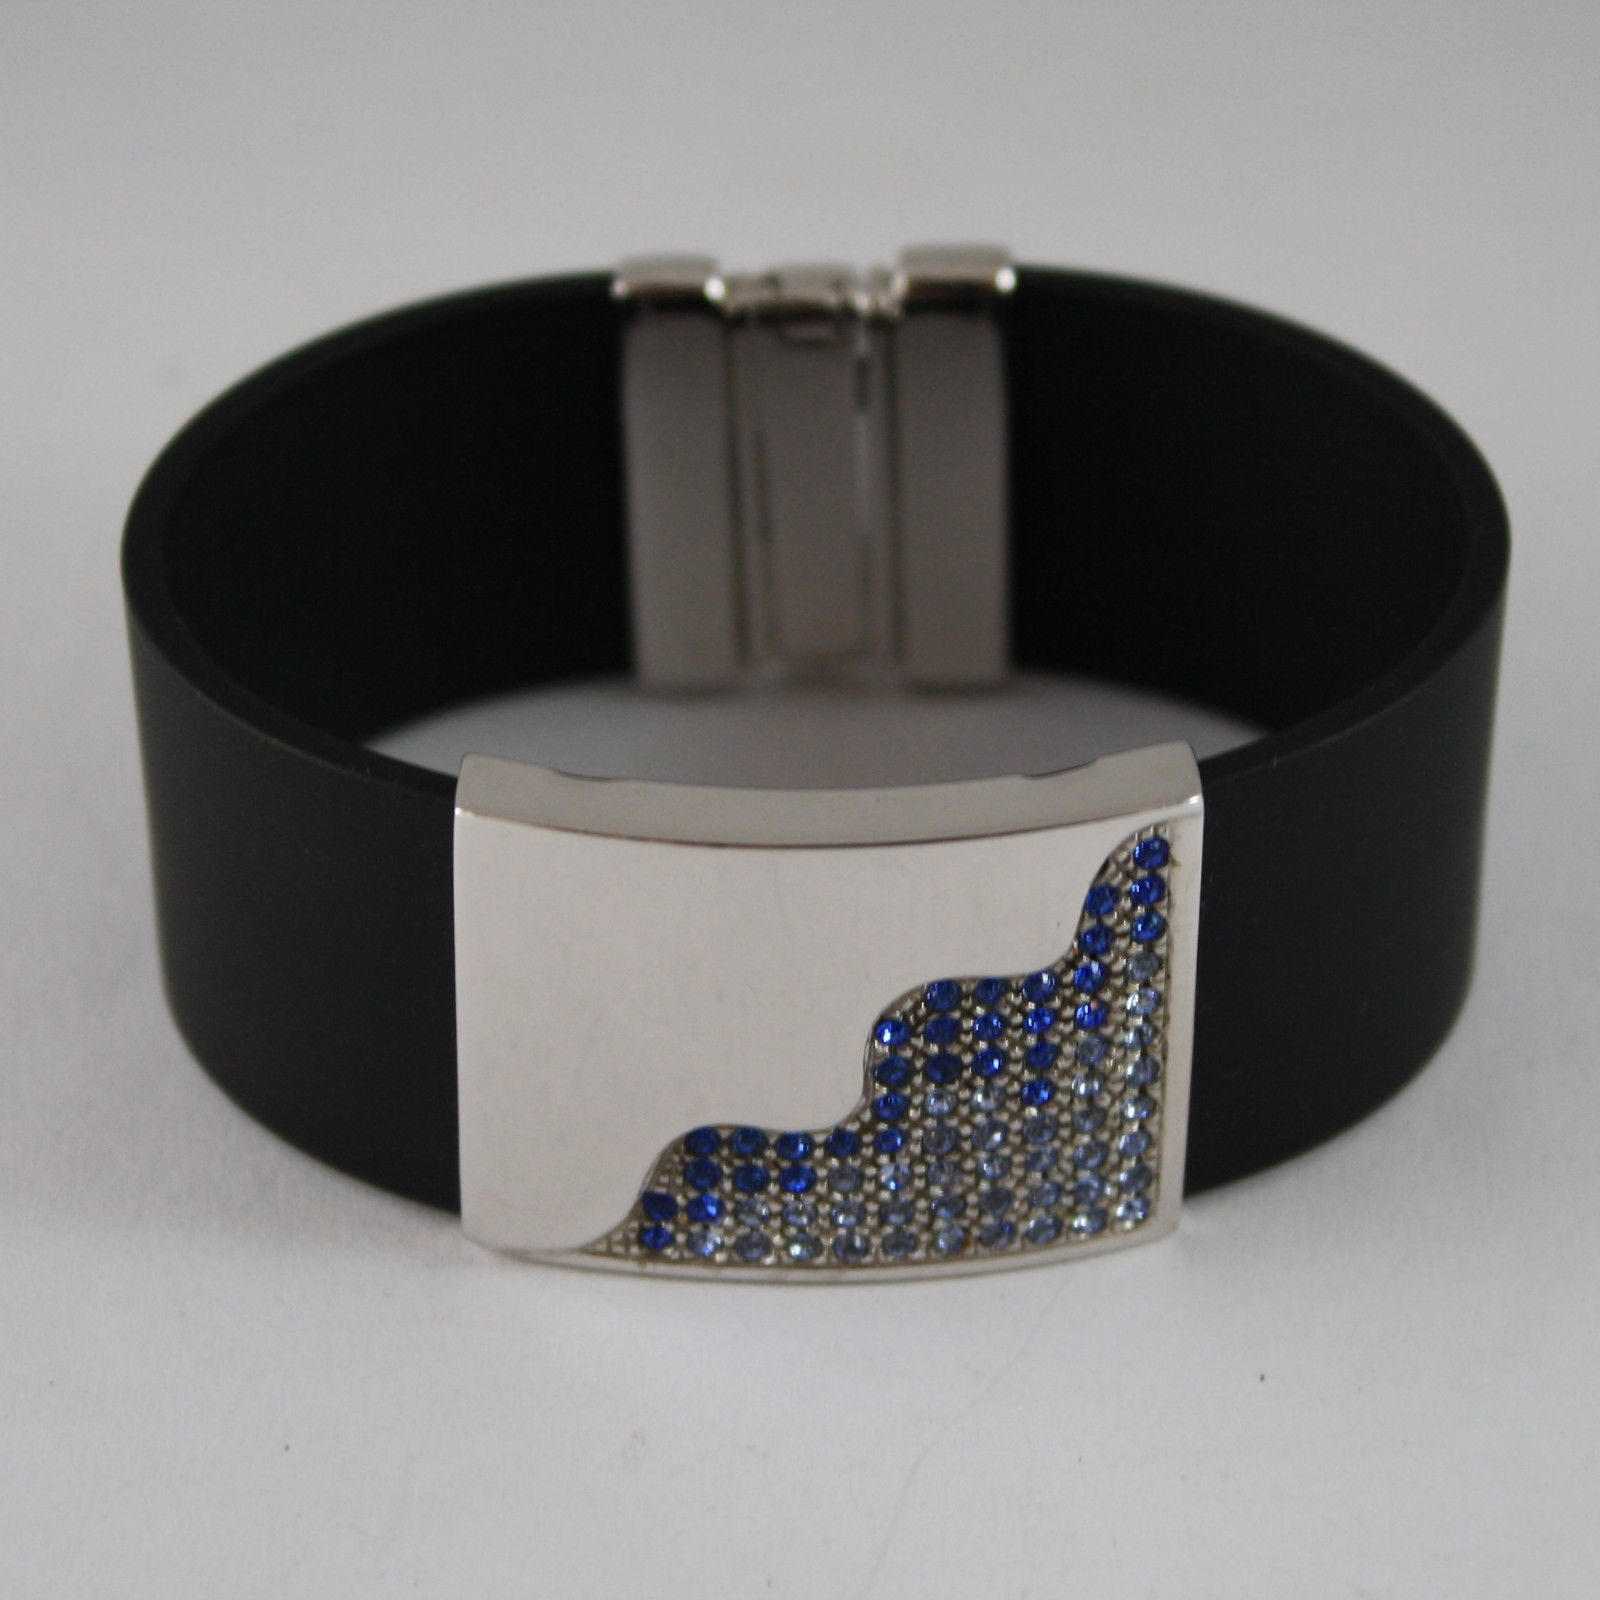 .925 RHODIUM SILVER BRACELET WITH RUBBER AND PLATE WITH BLUE CRISTALS